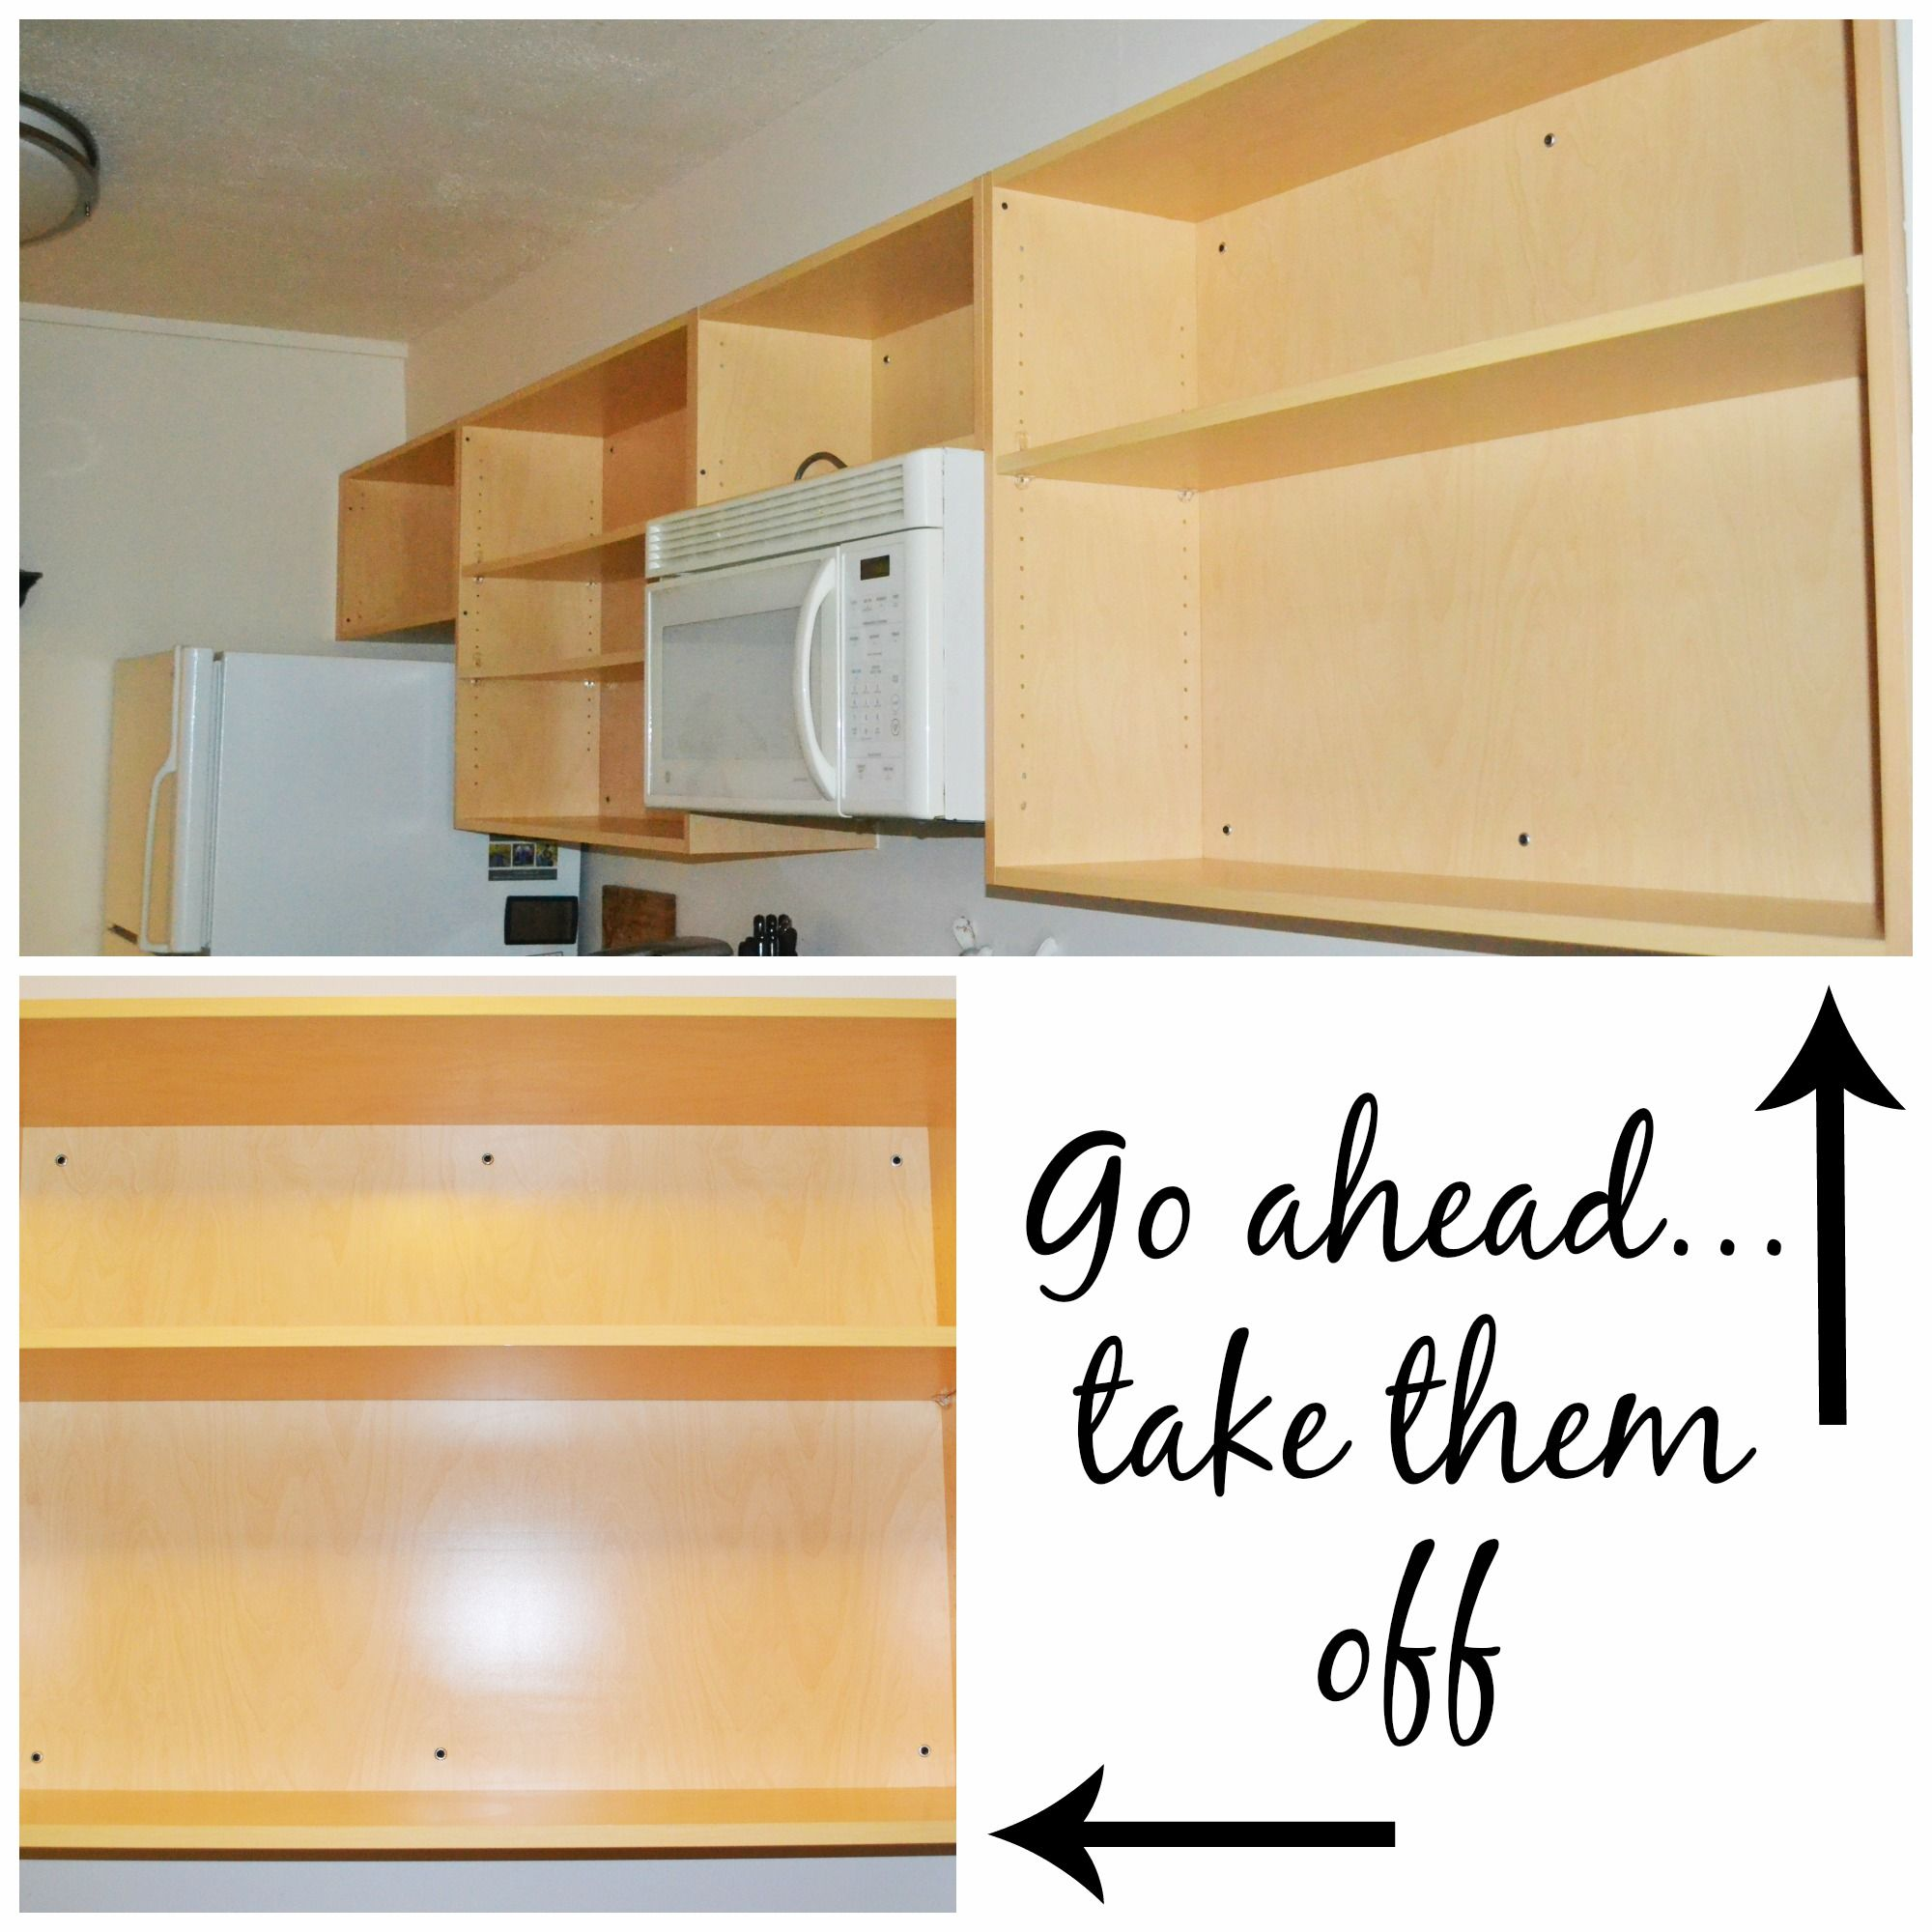 Kitchen Improvement Removing Cabinet Doors In 2020 Kitchen Cabinets How To Remove Kitchen Cabinets Installing Kitchen Cabinets